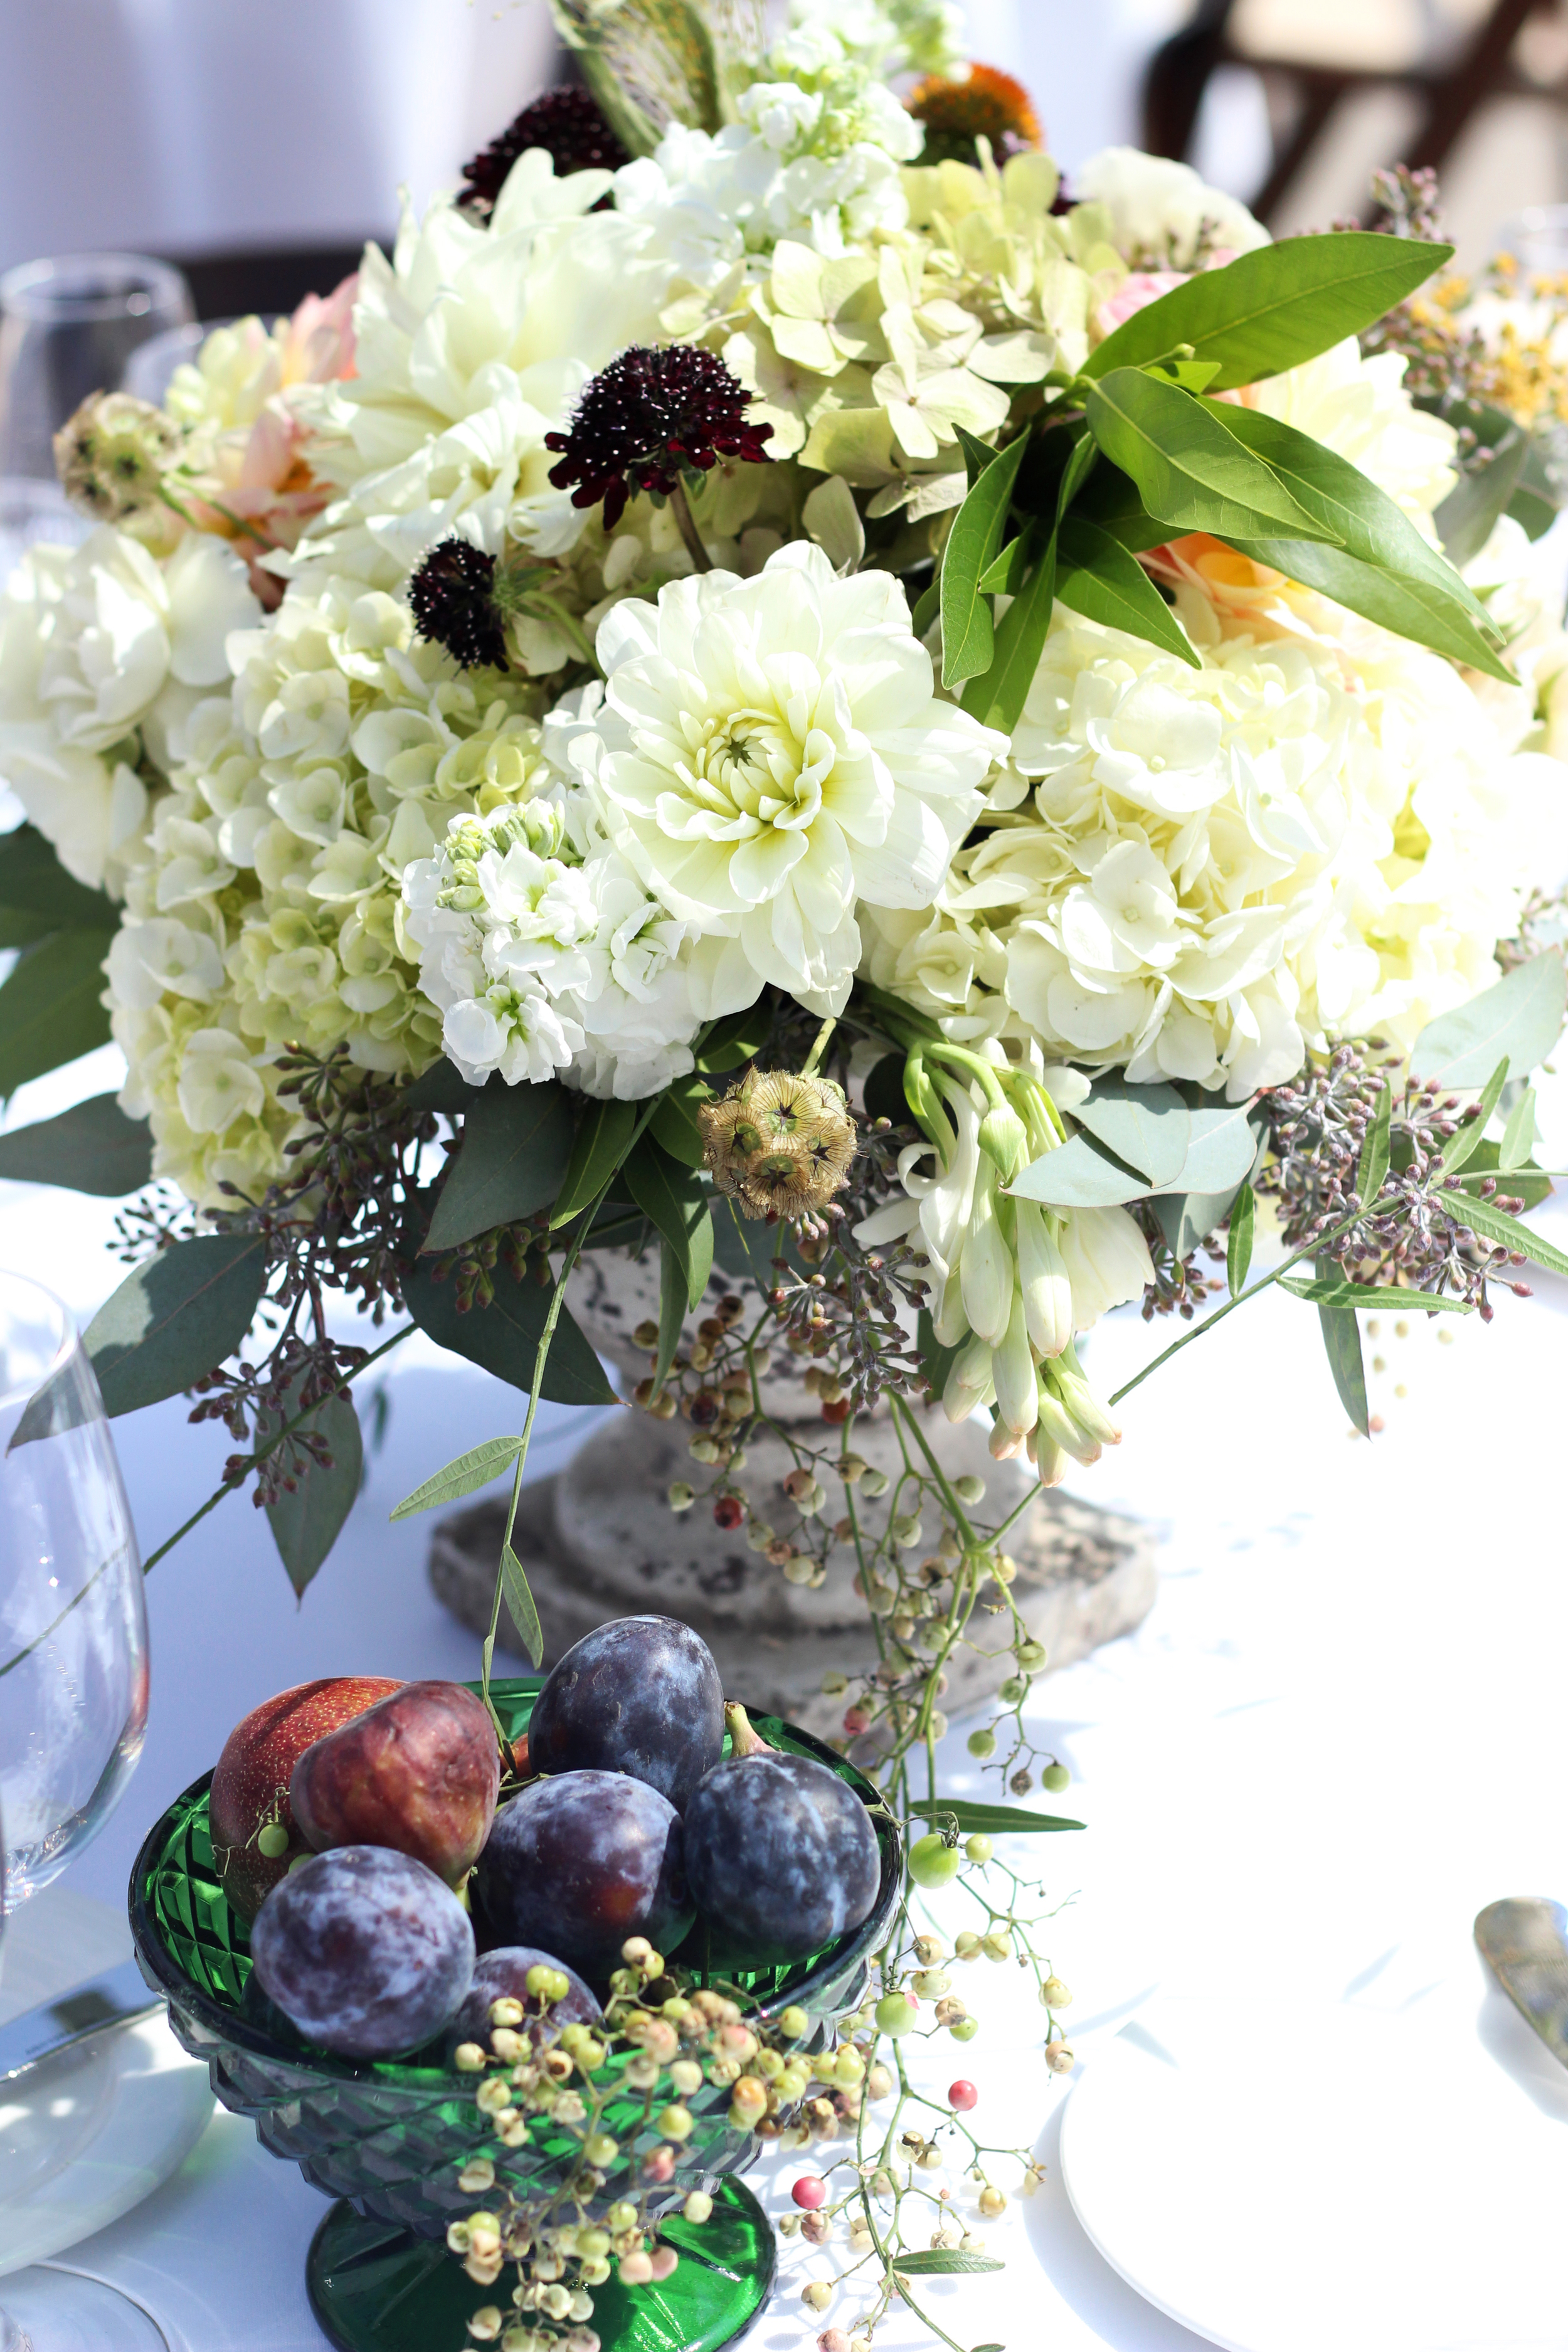 Lush fruit and floral centerpieces at The Ranch in Laguna Beach. Image by Adrienne Moore.